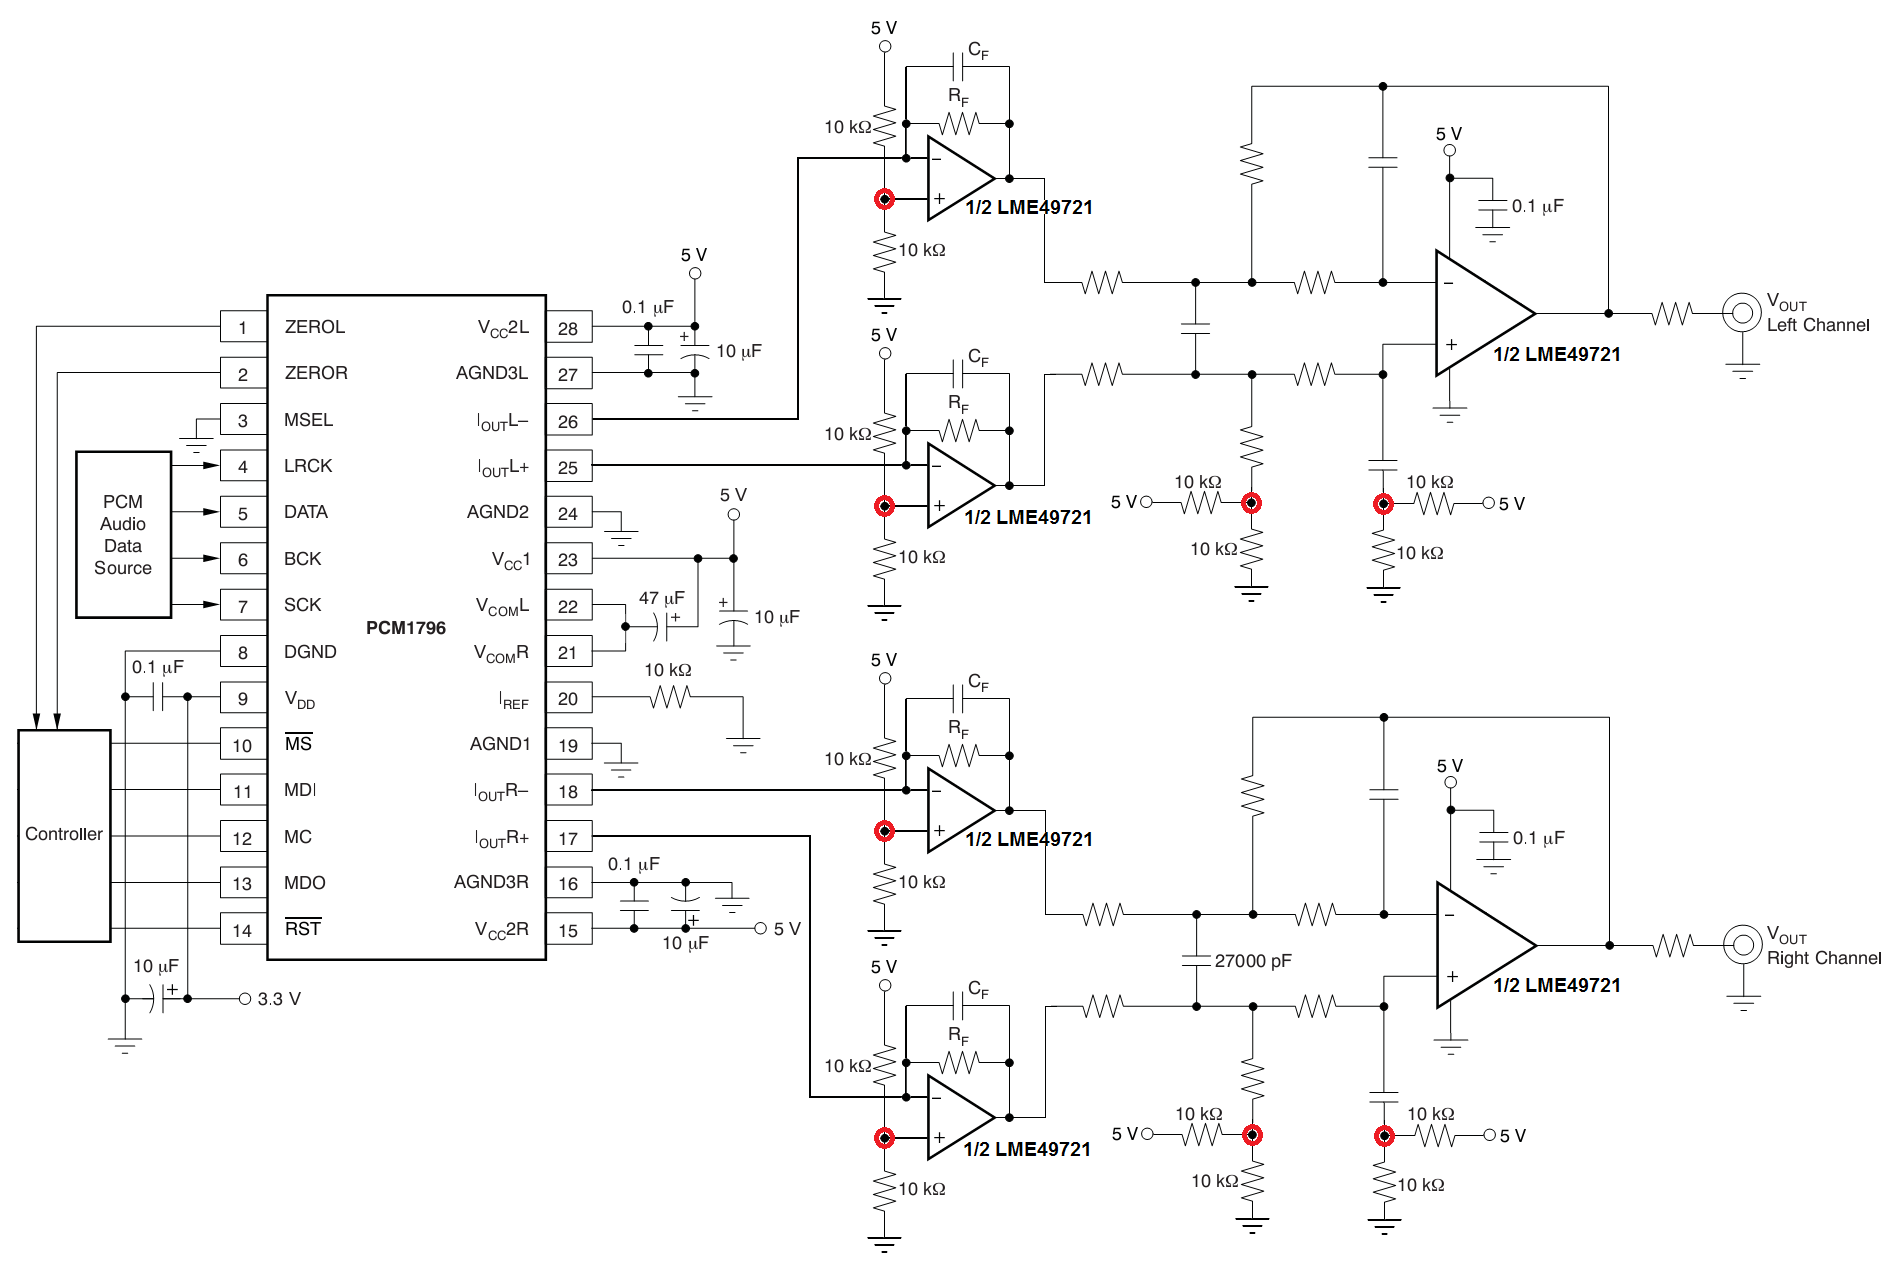 Pcm1795 Application Audio Forum Ti E2e Community Single Supply Op Amp Design What You Need To Do For Is Offer A Virtual Ground Usually Half Voltage In Order Improve The Driver Capacity